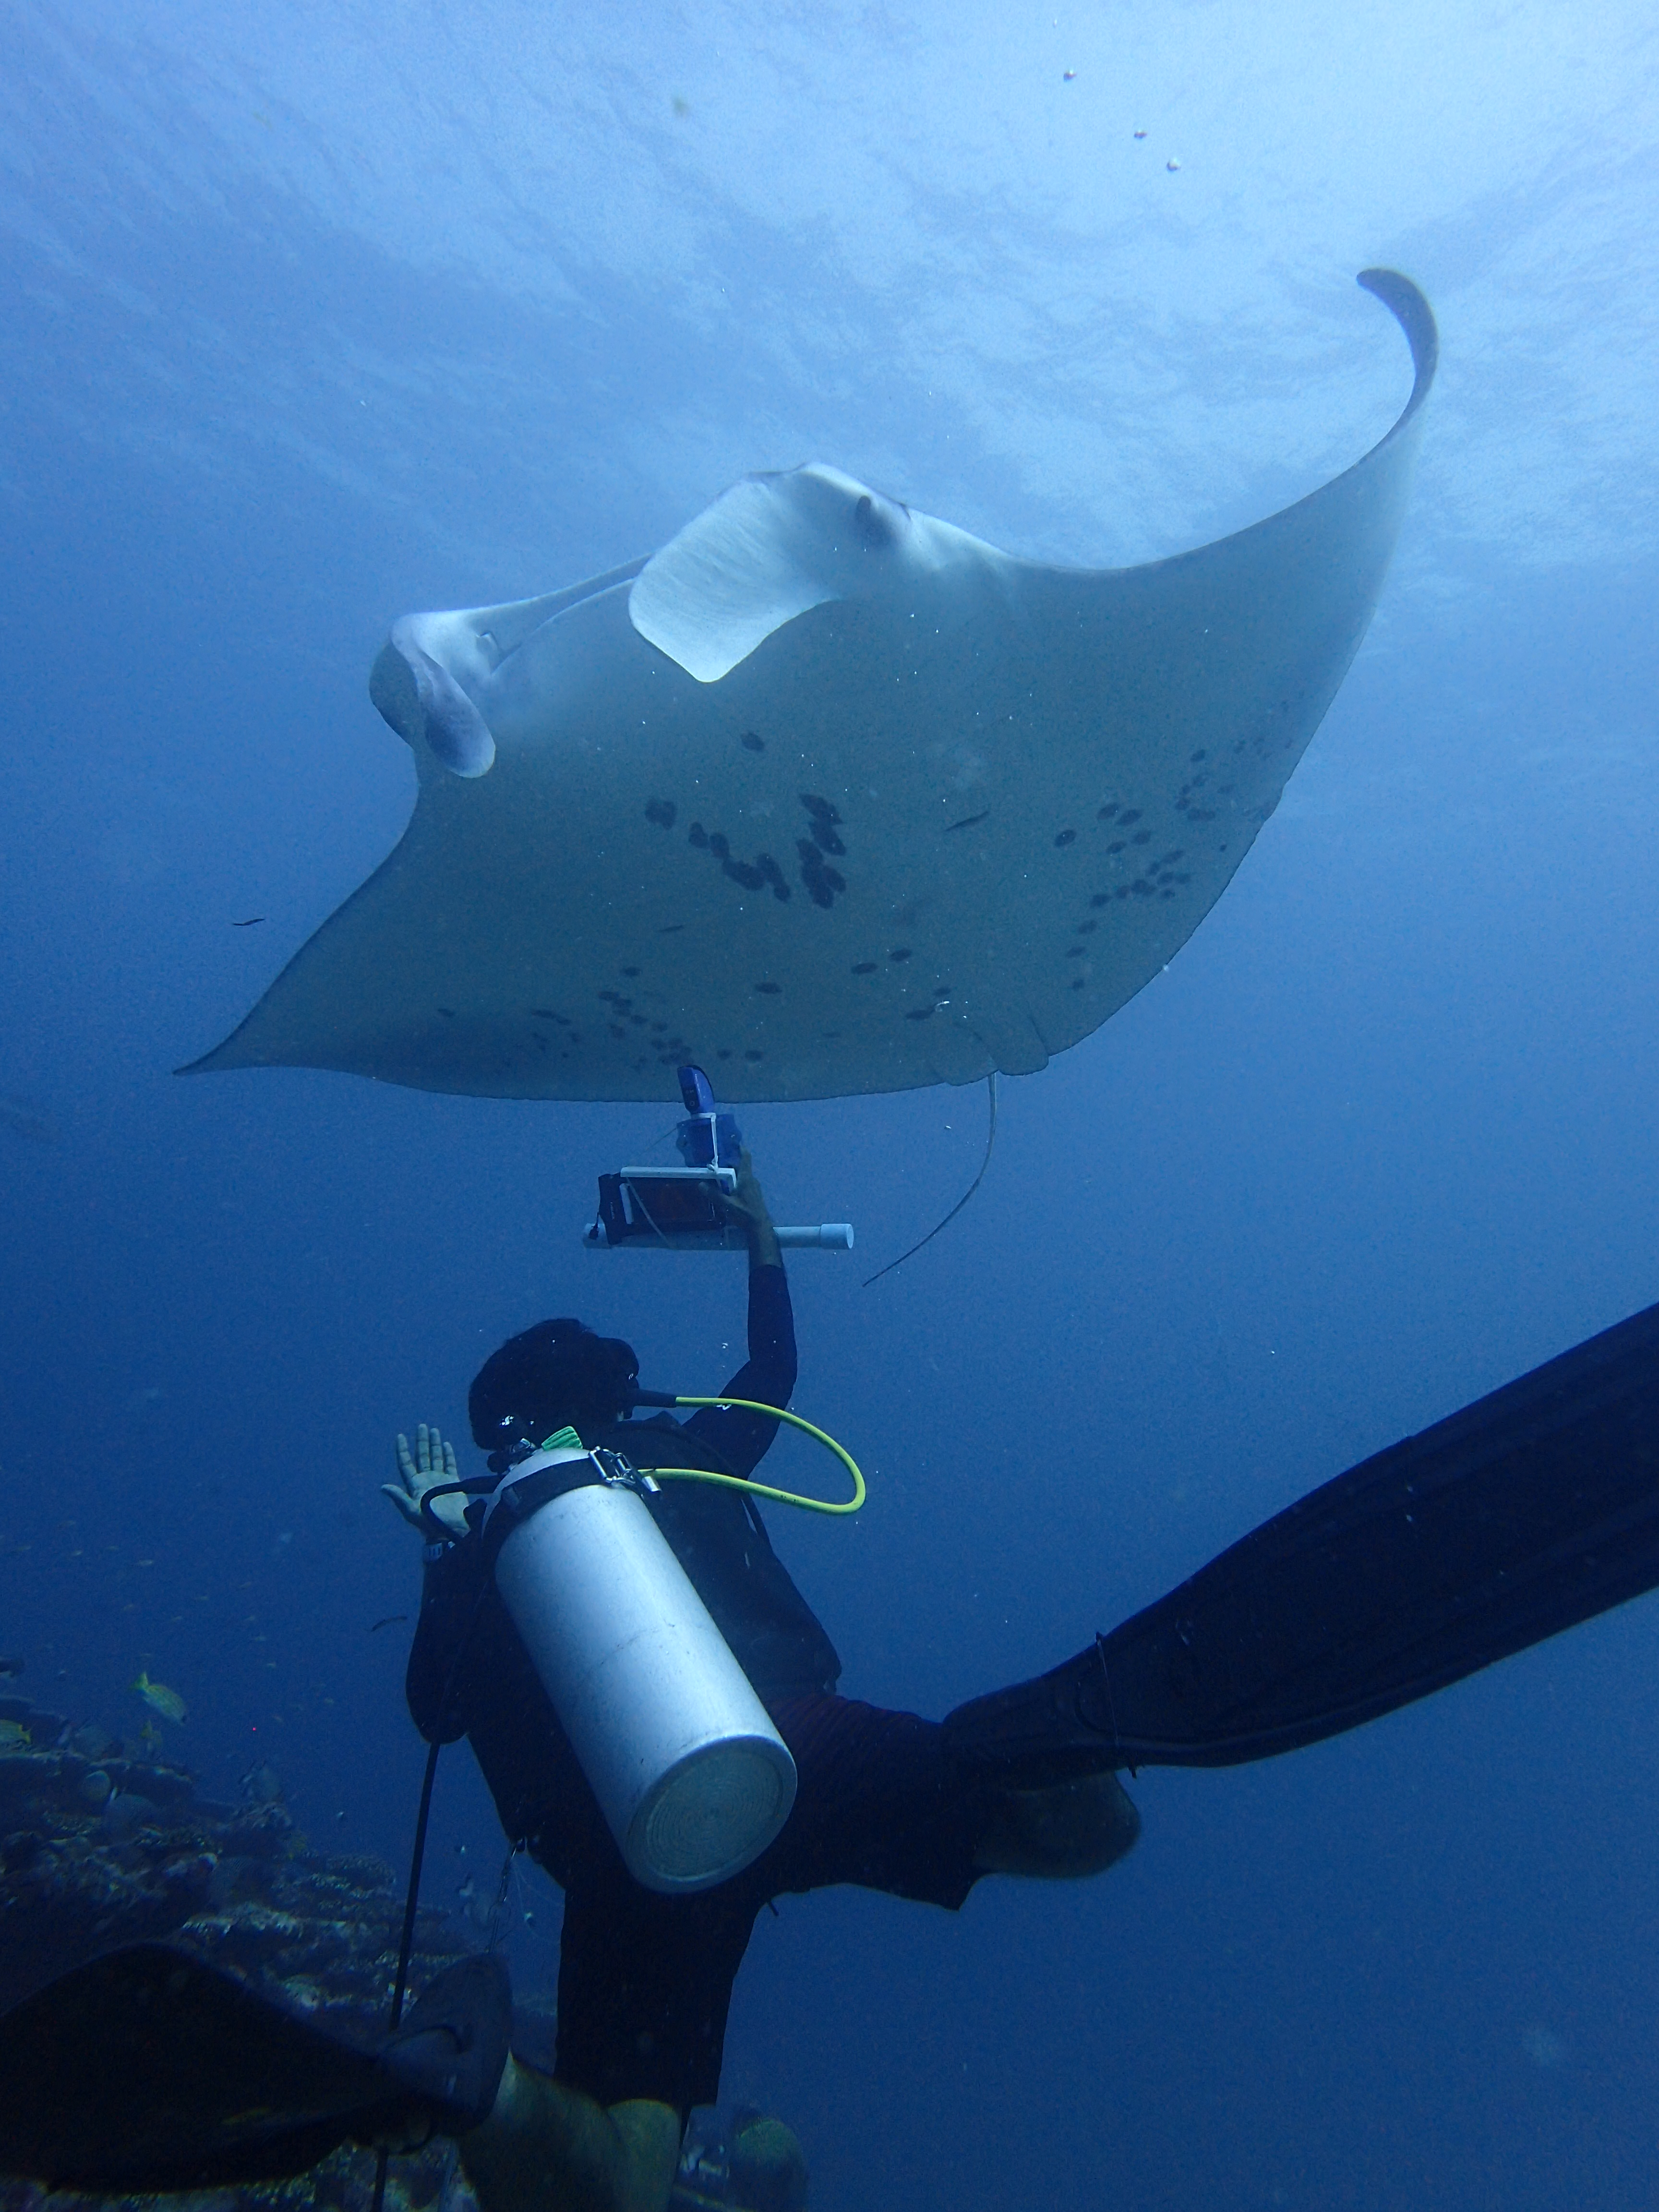 Deep water ultrasound examination of free living reef manta rays to assess reproductive status